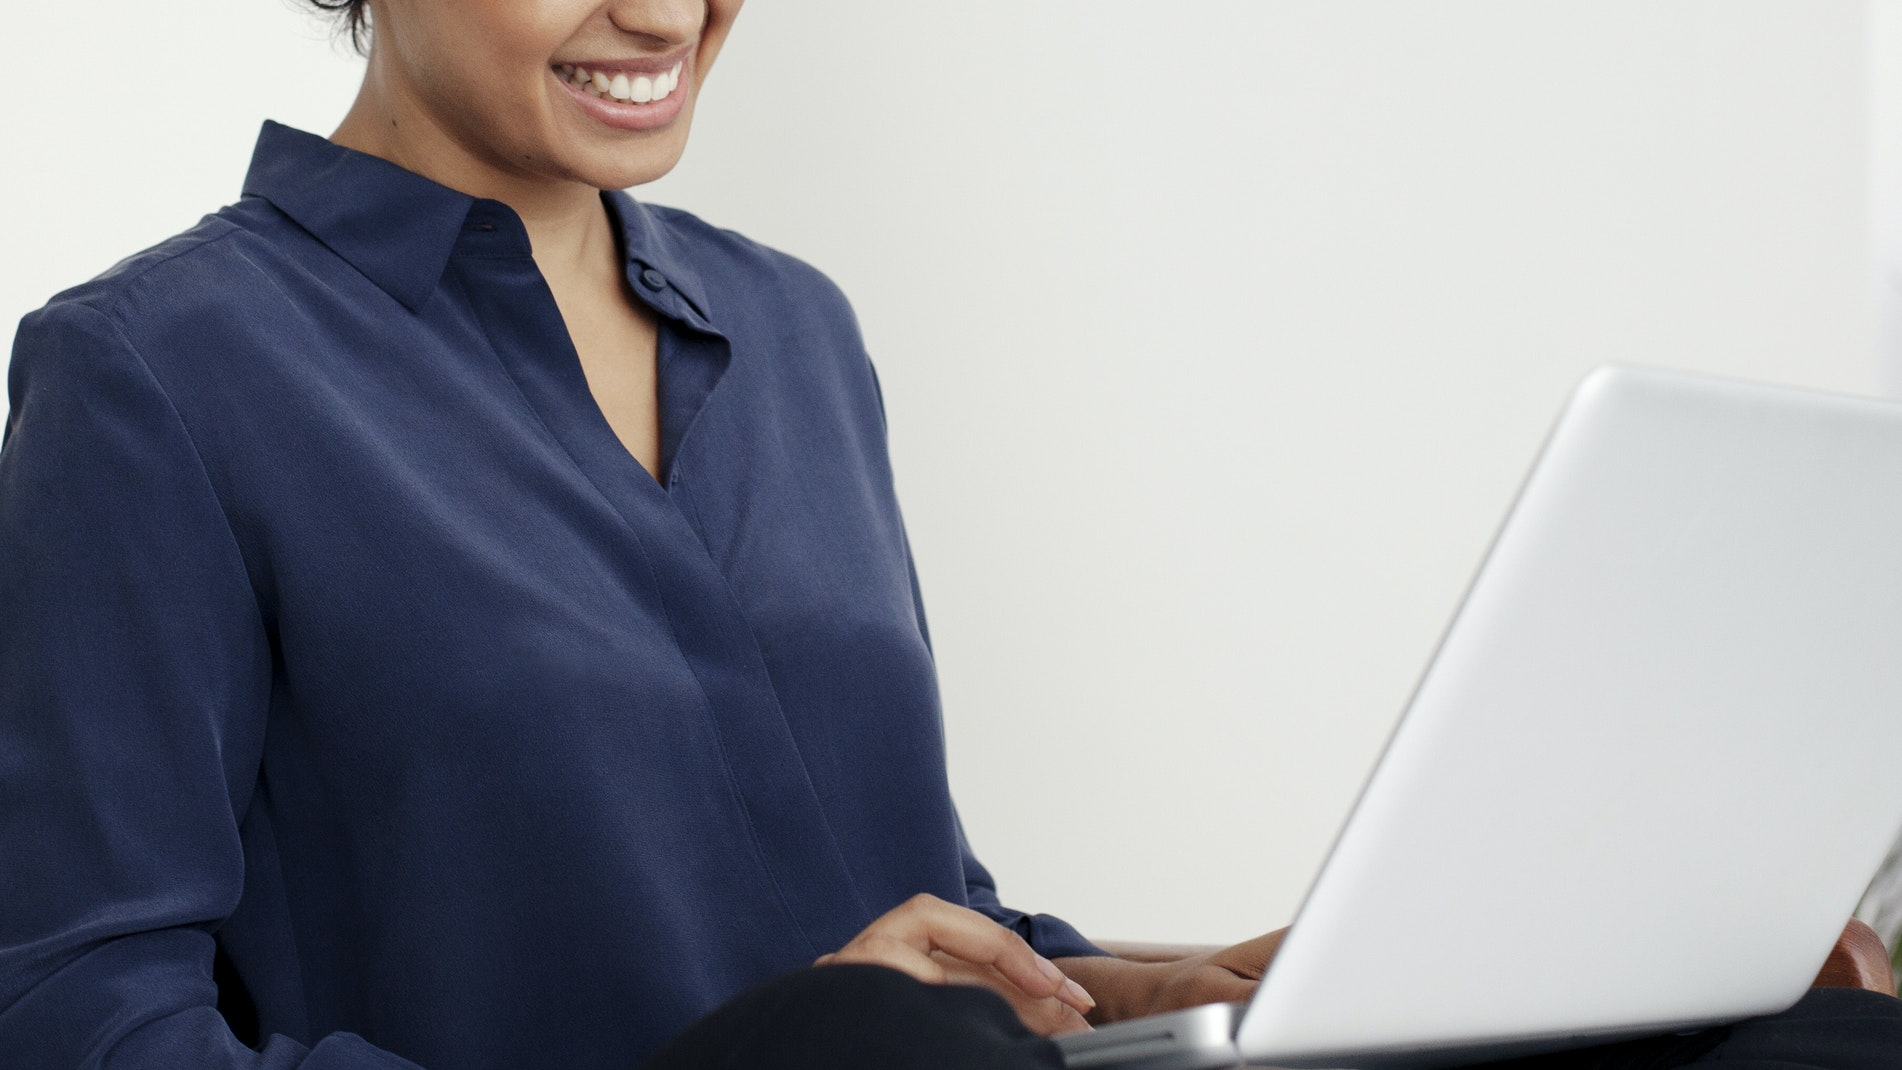 injectables telemedicine virtual doctor consultations | Spotlyte